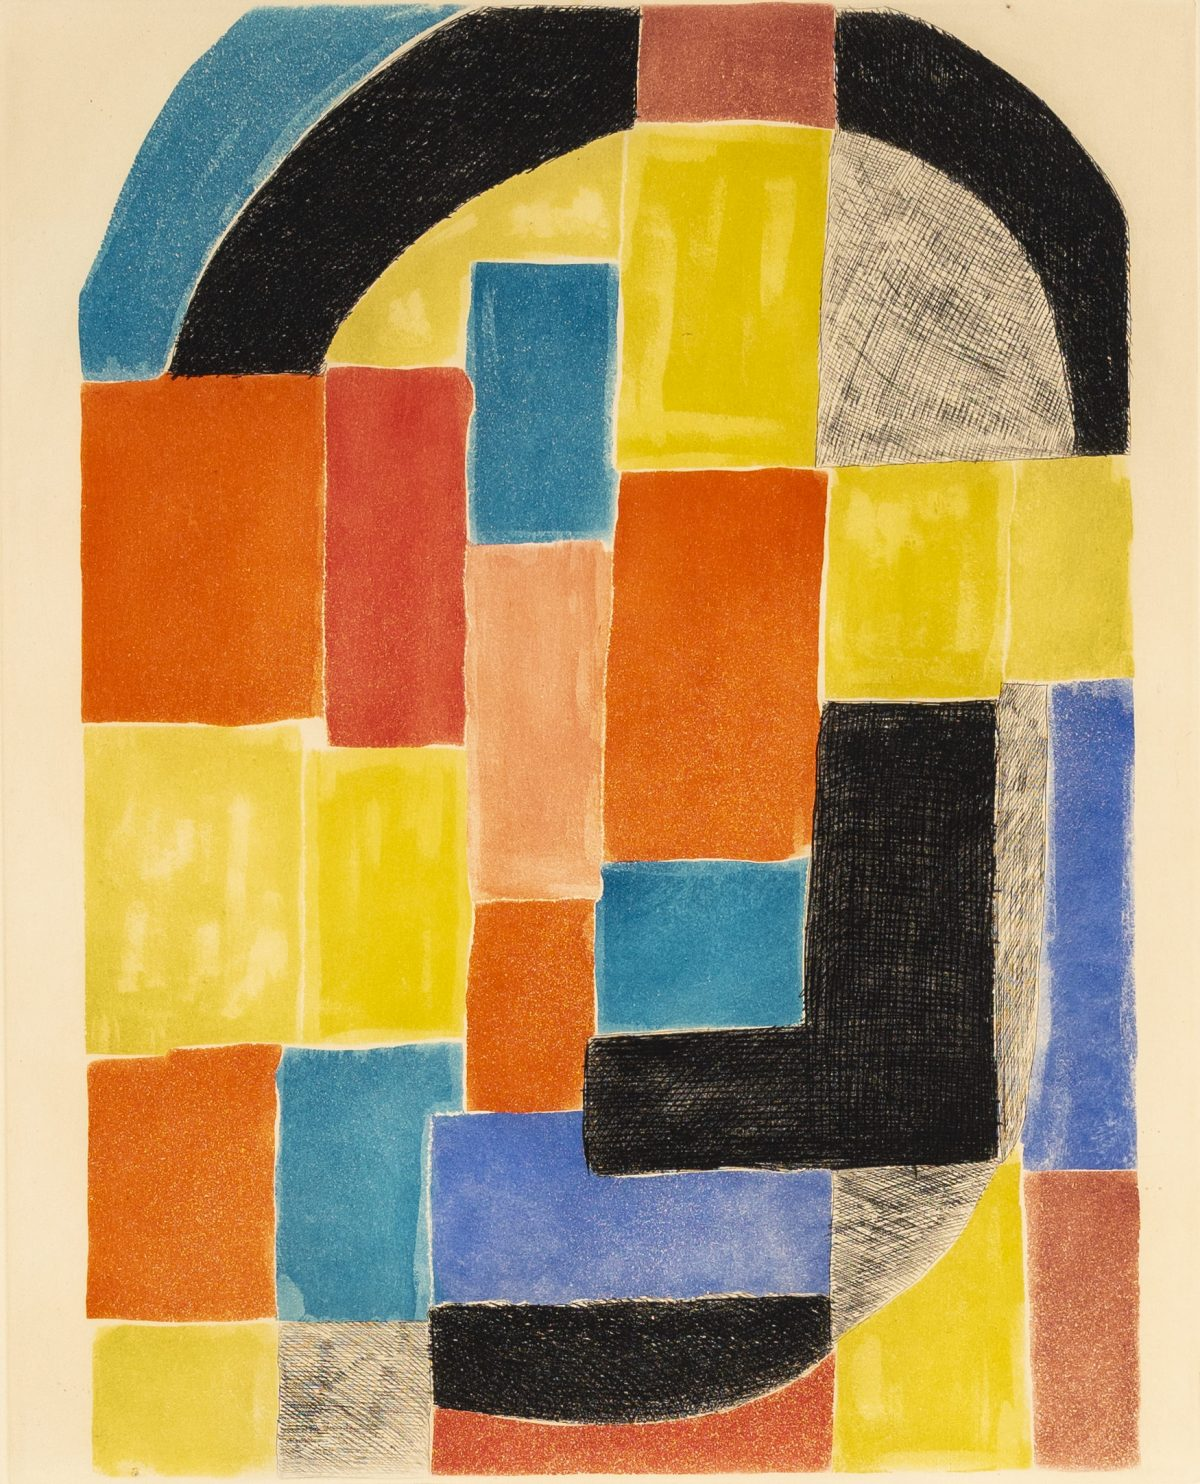 Sonia Delaunay - Composition